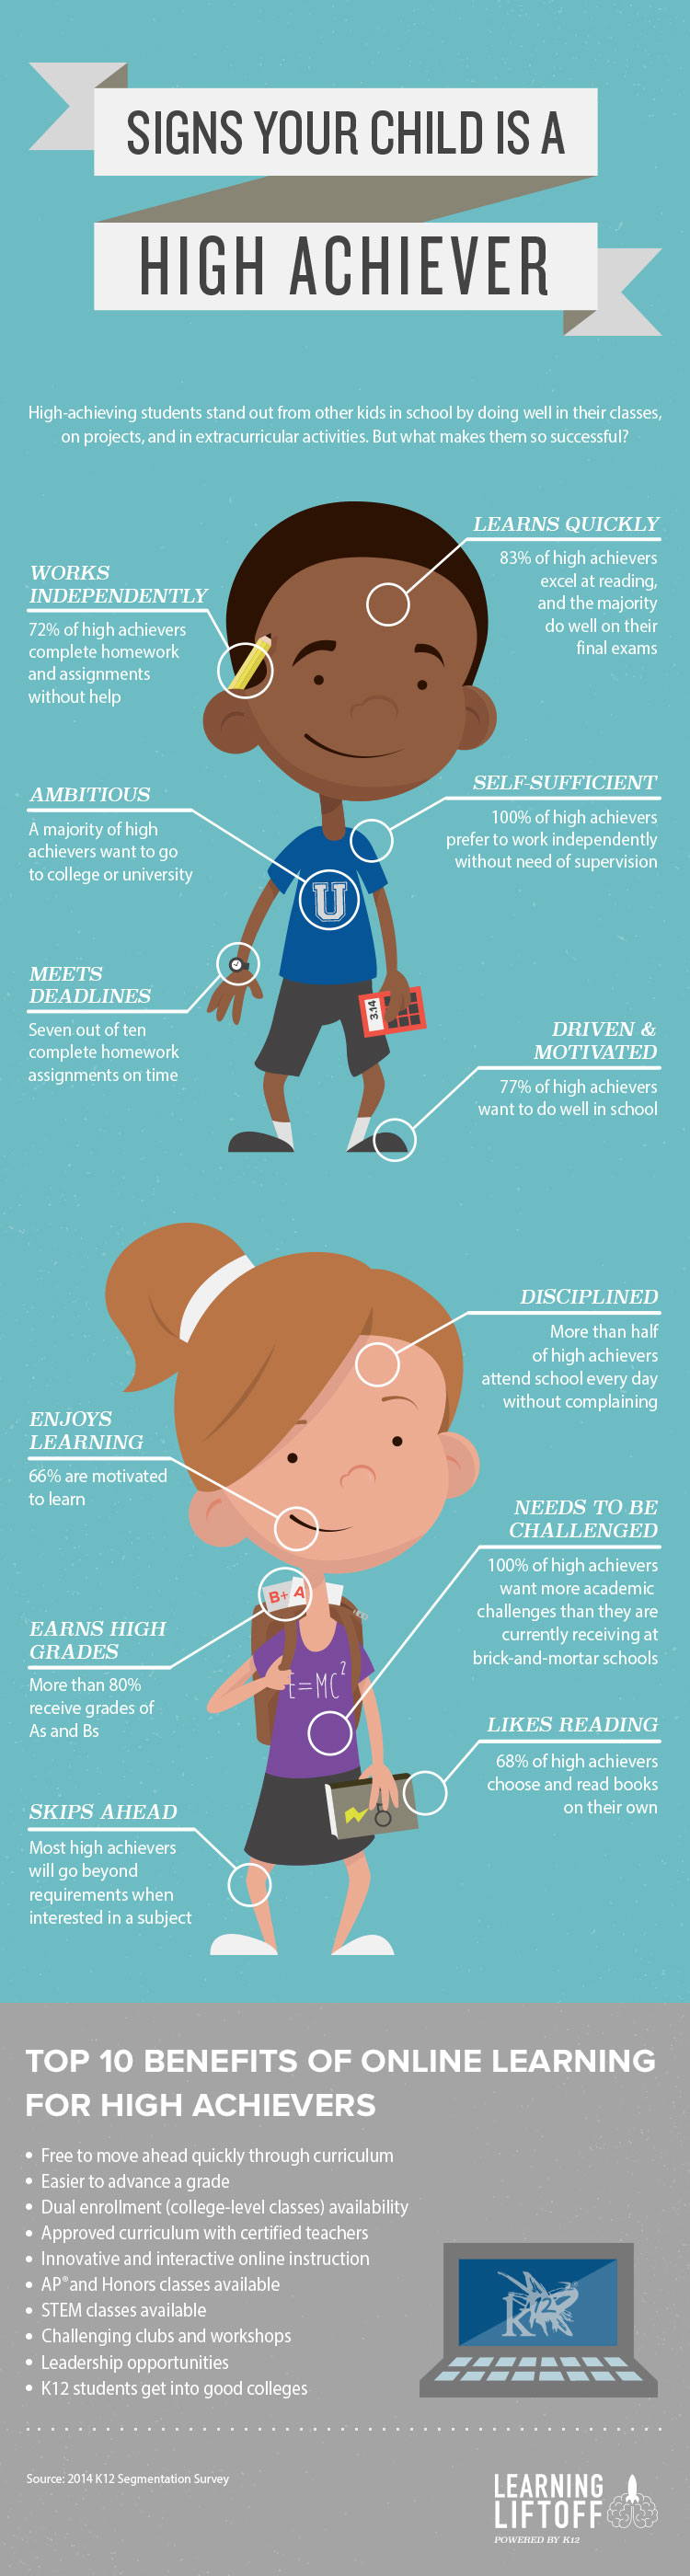 infographic of children with high achieving signs noted